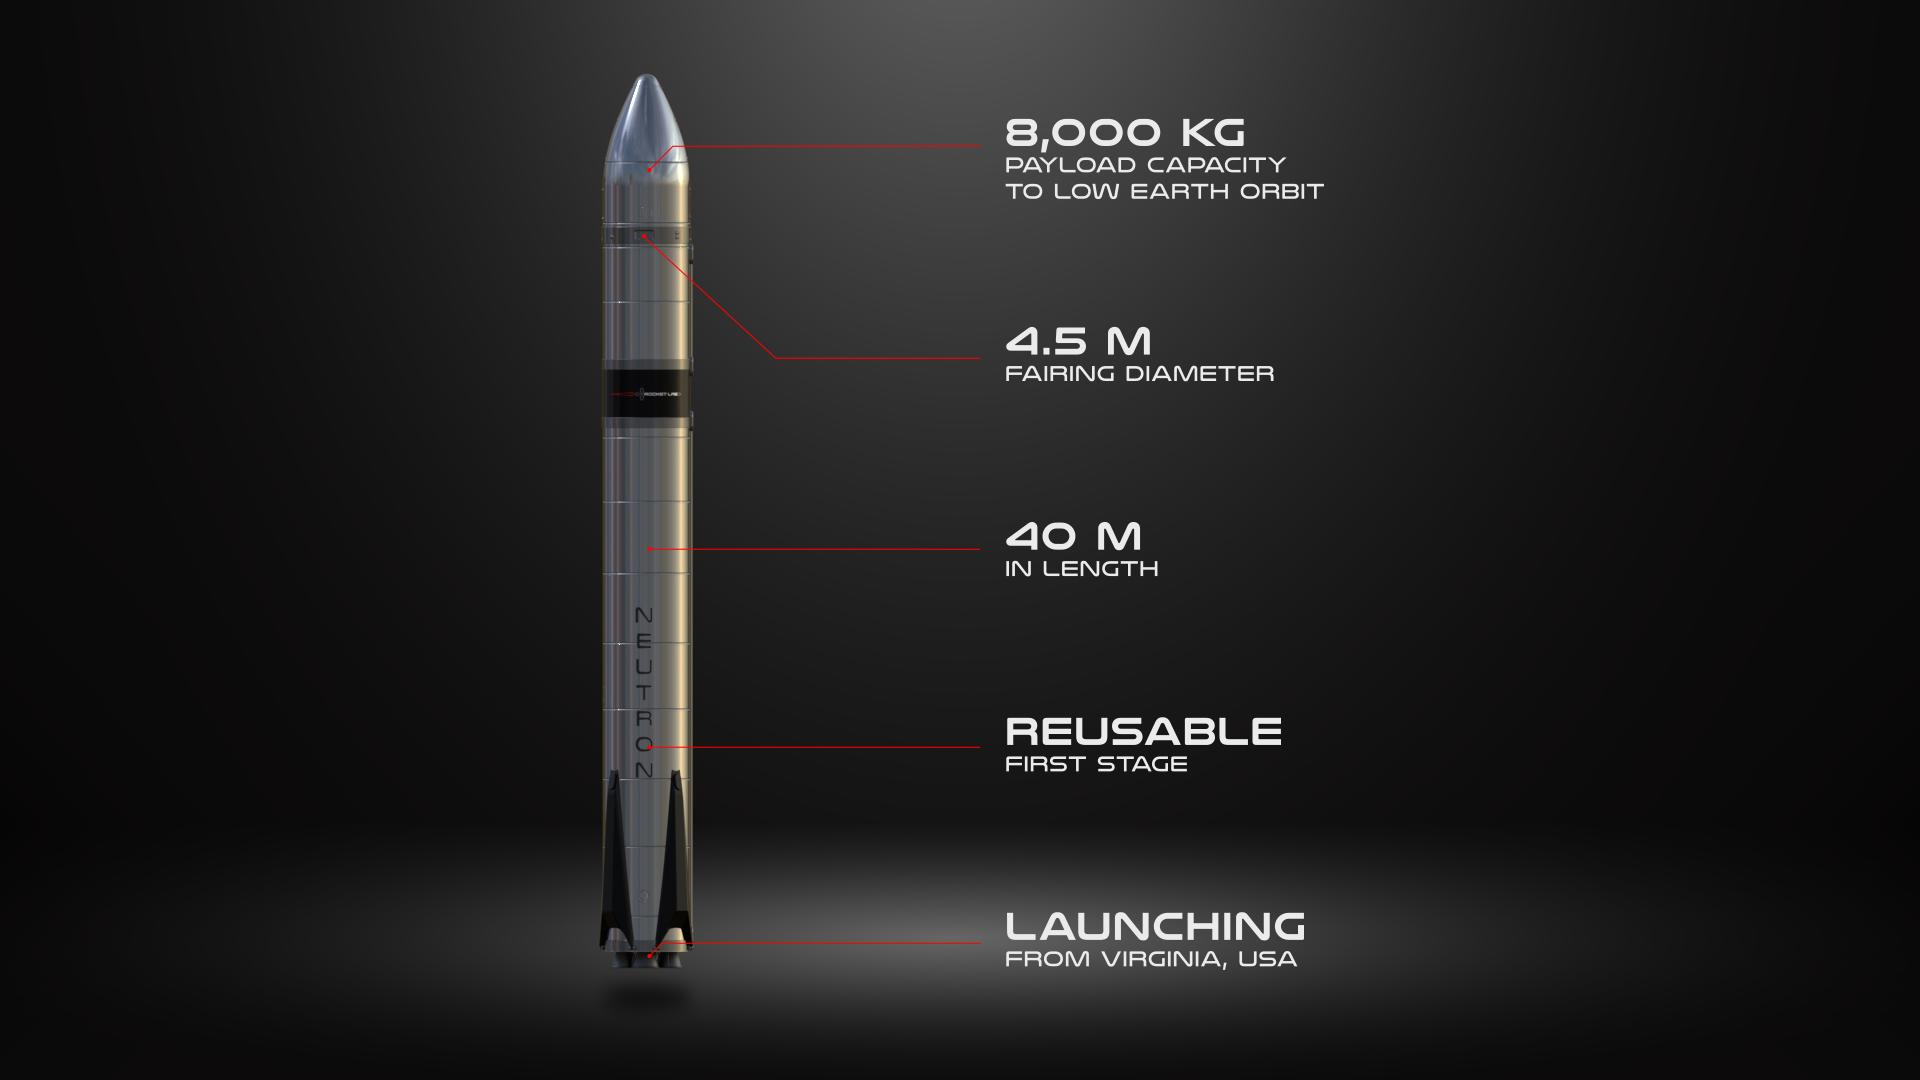 Rocket Lab reveals plans for reusable rocket with 8 ton payload | Engadget